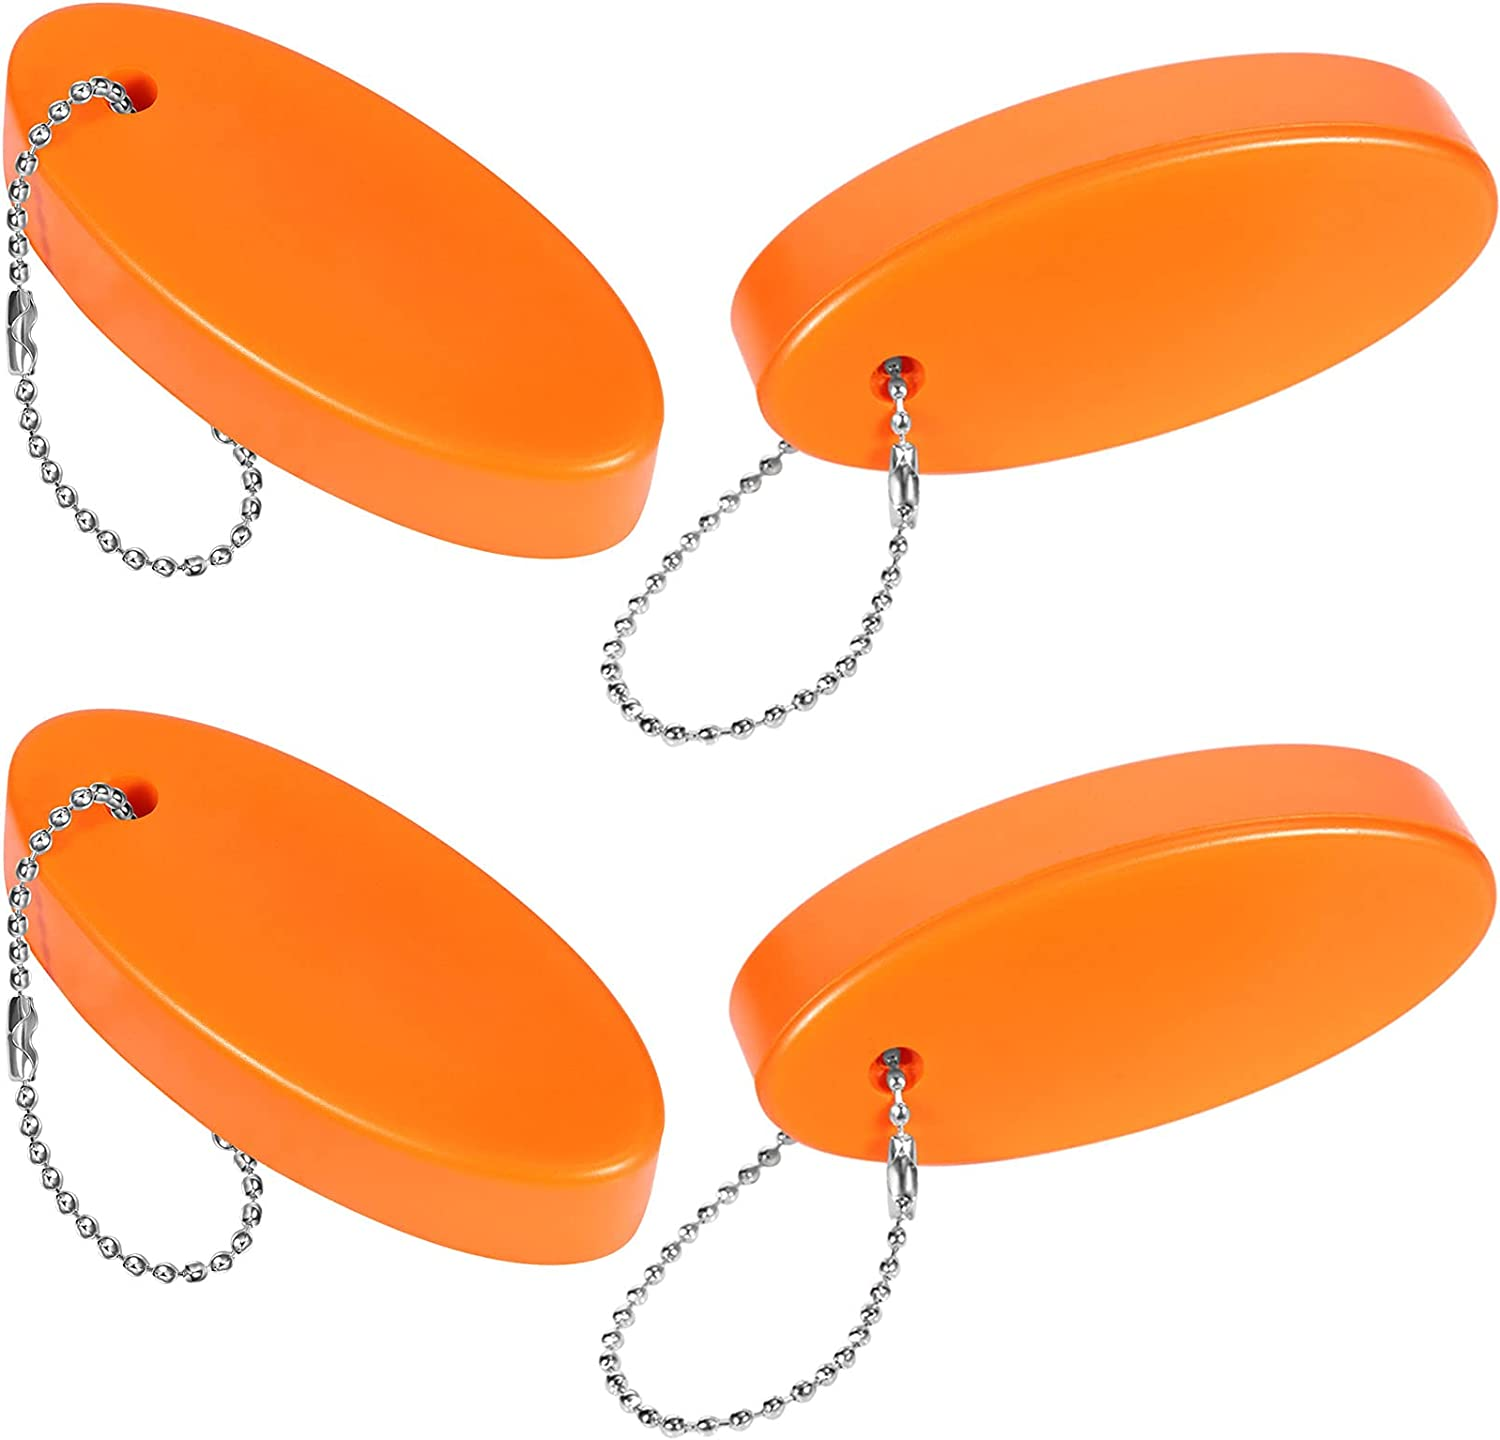 Frienda 10 Pieces Sports Foam Keychains Waterproof Floatable Keychains Boating Fishing Foam Keychains Floatable Key Fobs with 10 Pieces Safety Lanyards for Boating Surfing Sailing and Outdoor Sports